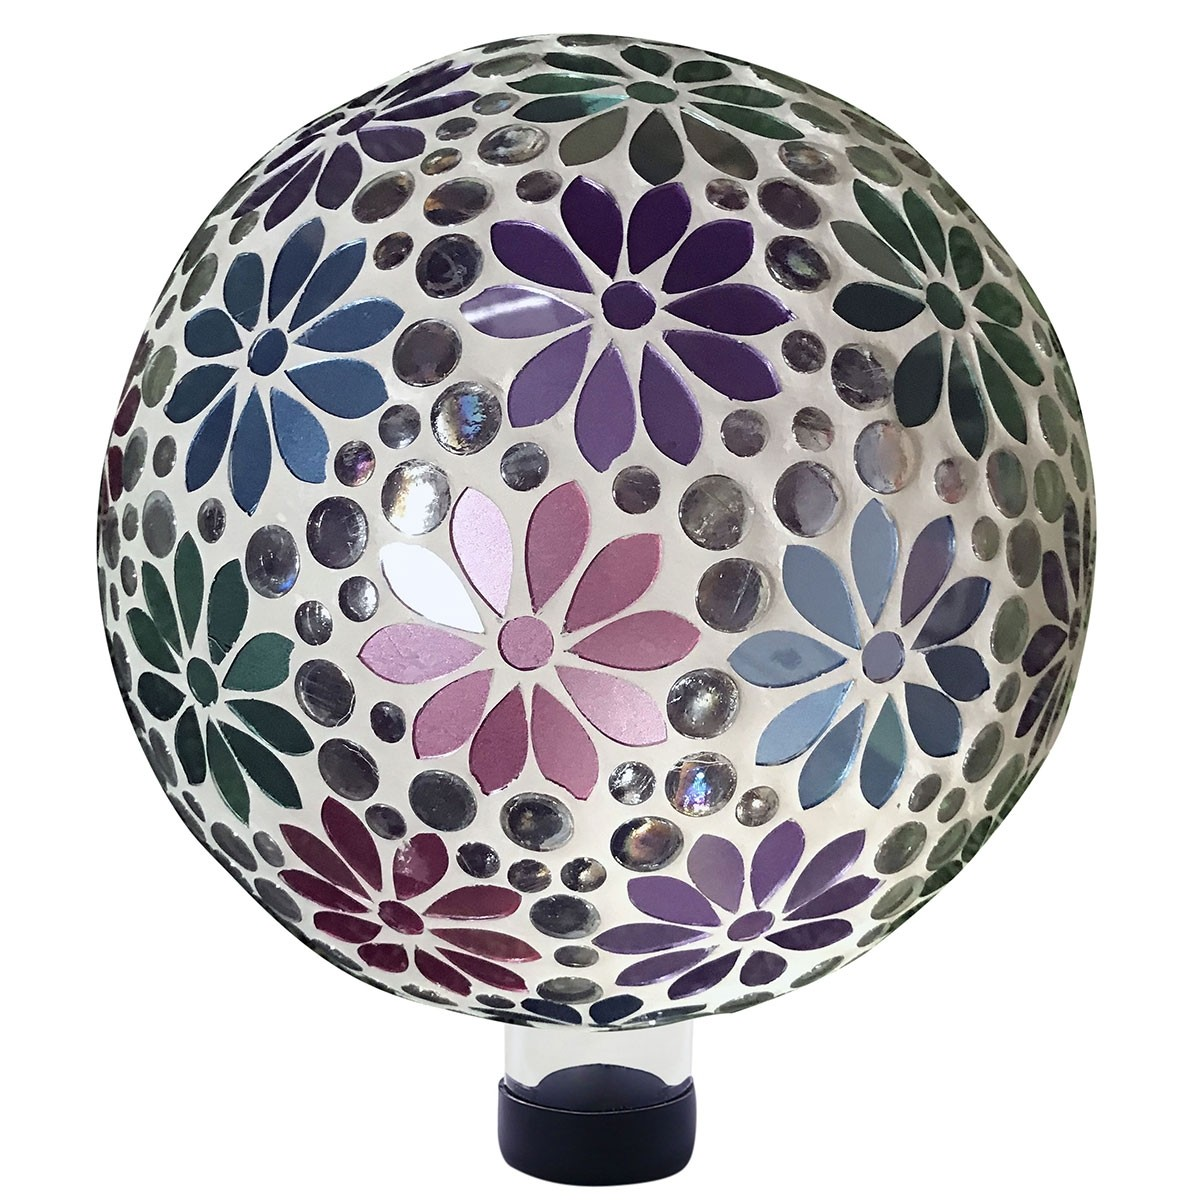 Alpine HGY426 Colorful Gazing Globe with Mosaic Flower Design